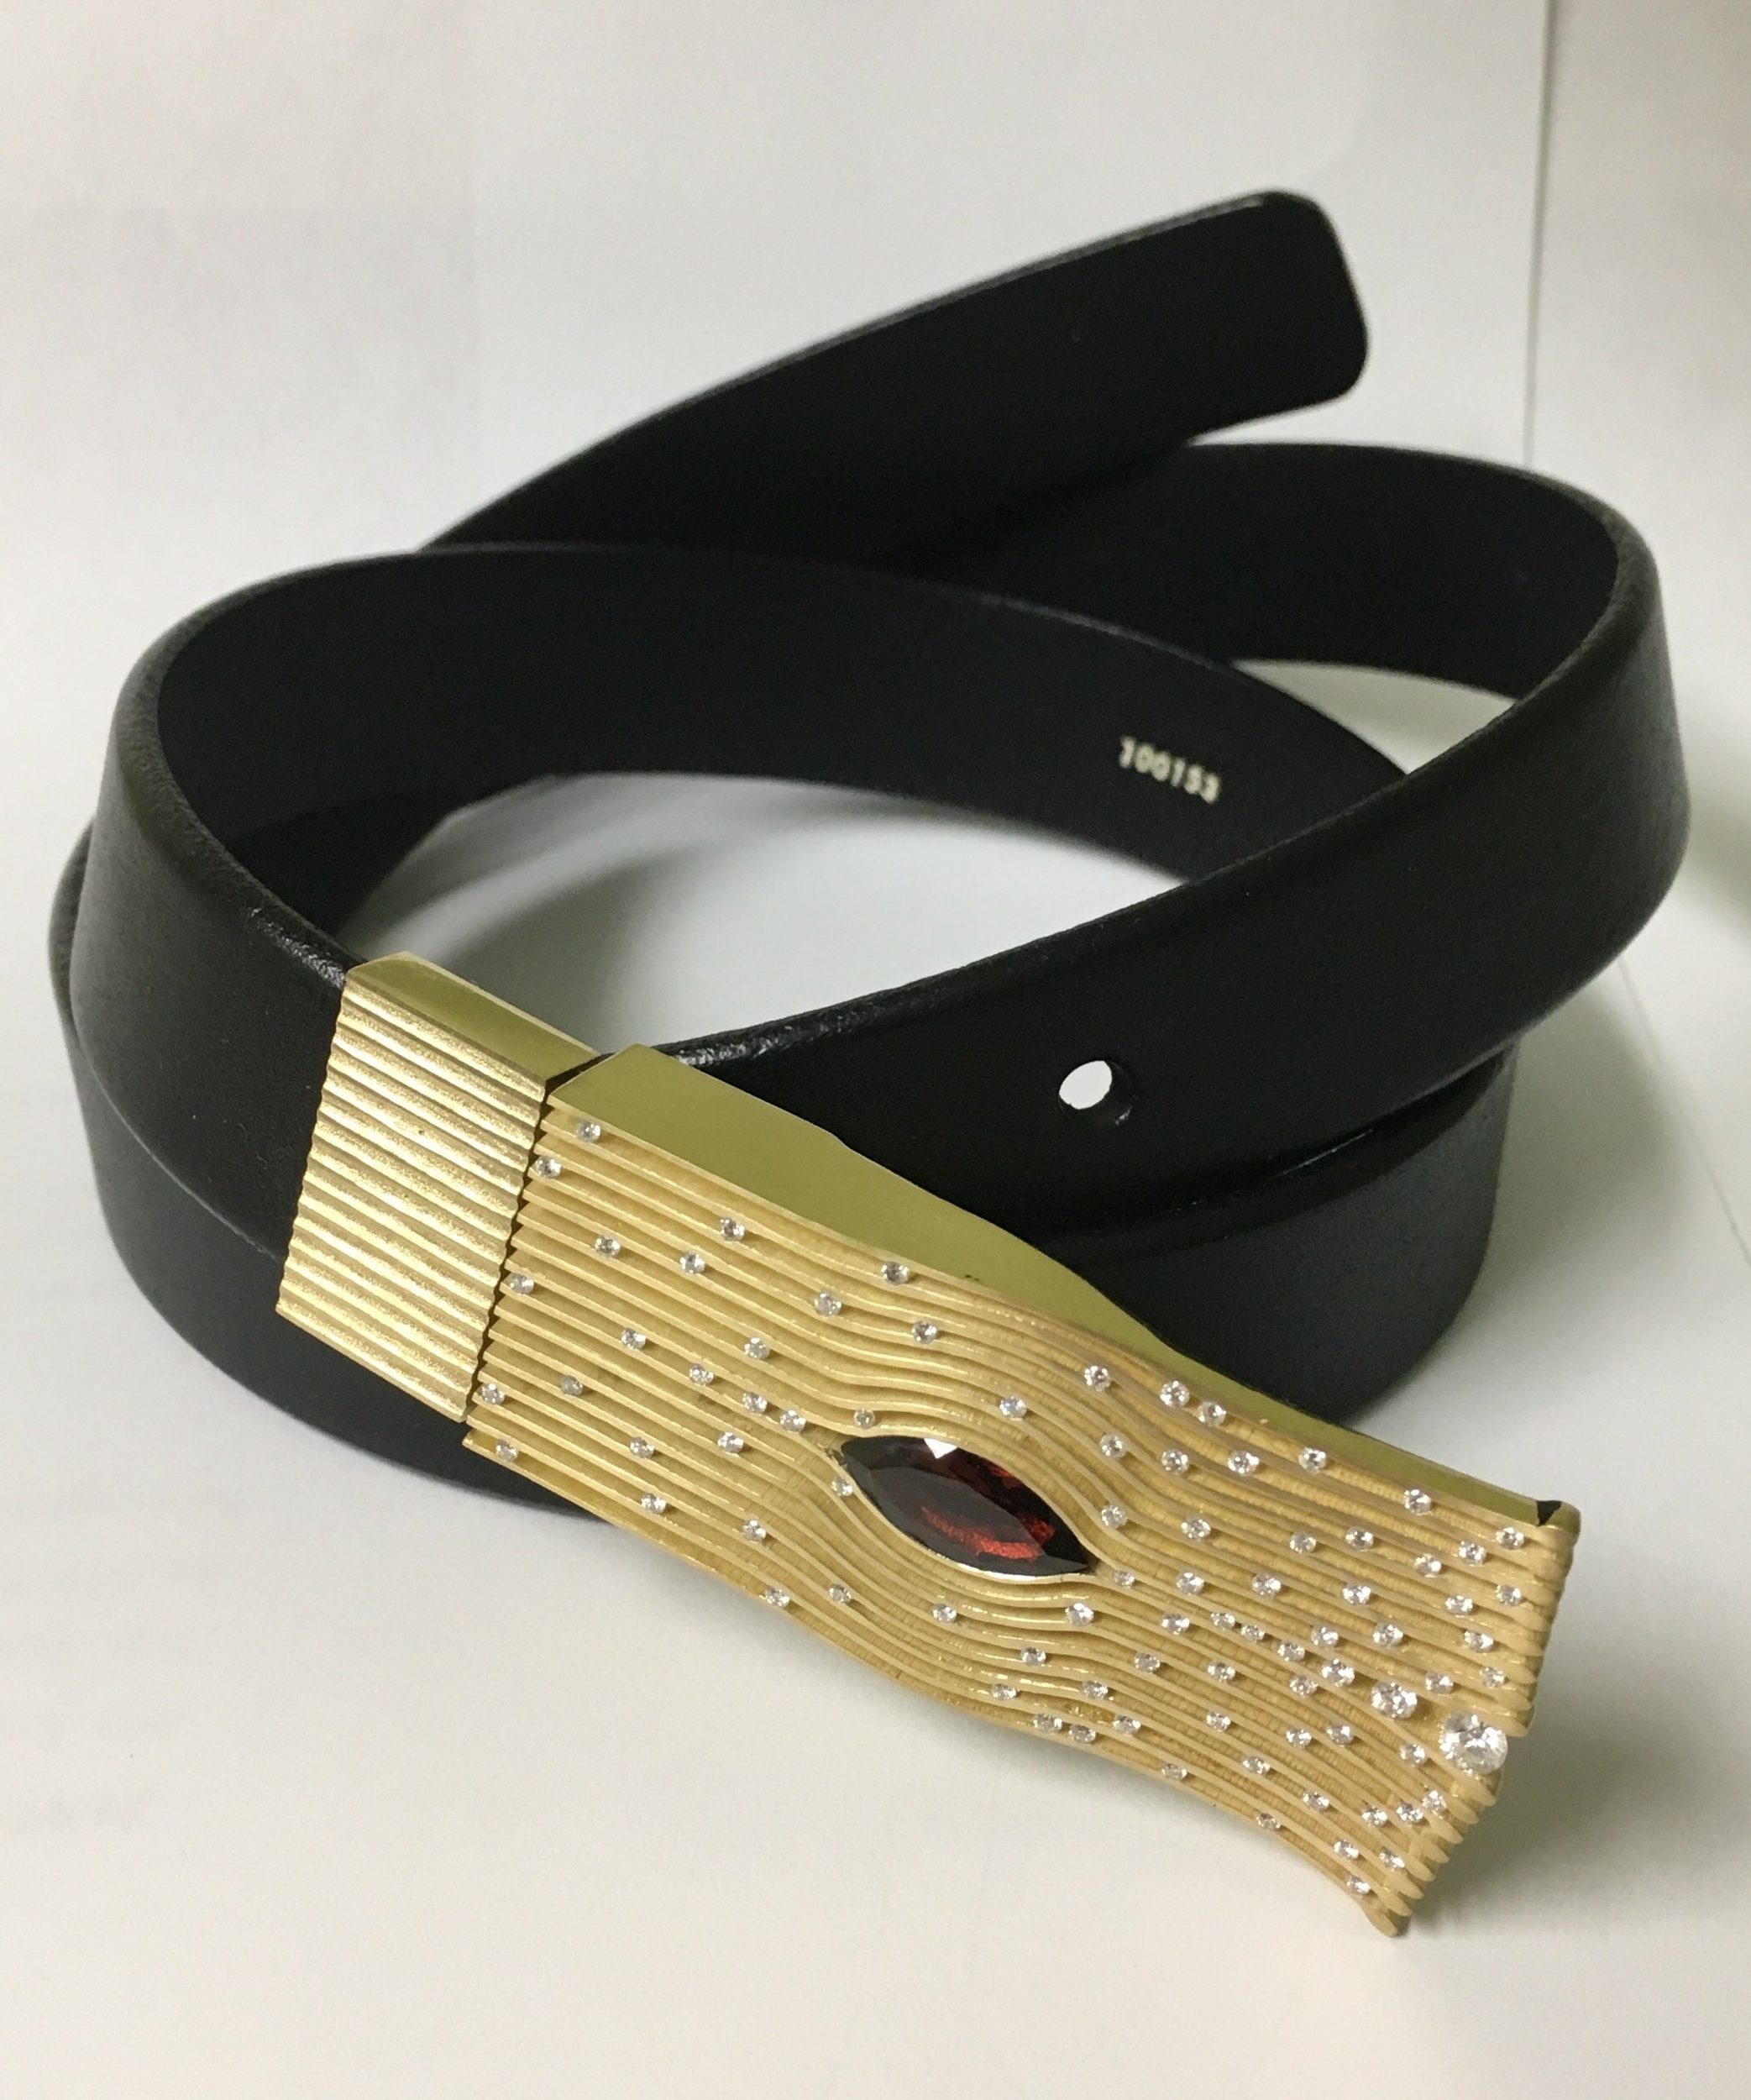 18k Yellow Gold Handmade One-of-a-Kind Belt Buckle with Marquise shape Mozambique Garnet and VS2/G diamond melee. Private Collection - 2017 - CHRISTO KIFFER